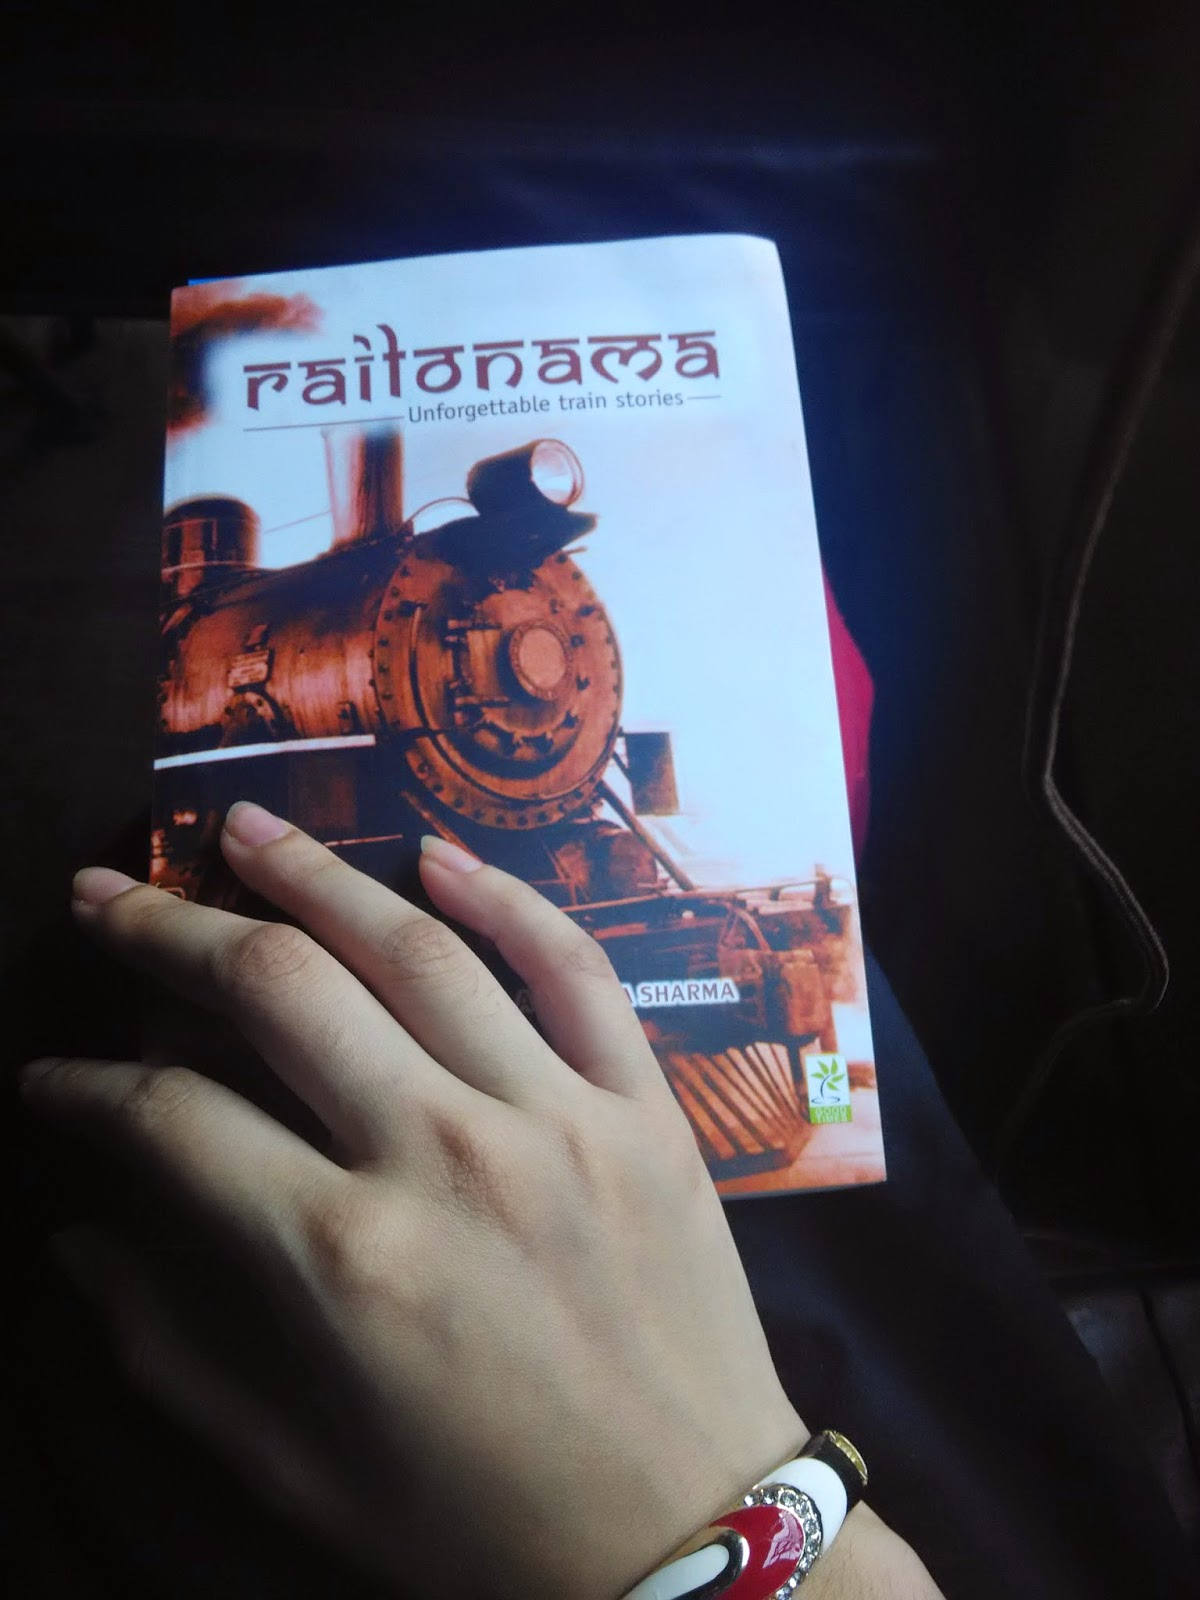 railonama, book review, indian authors, anupama sharma, railonama review, blogger review, blogadda, good reads